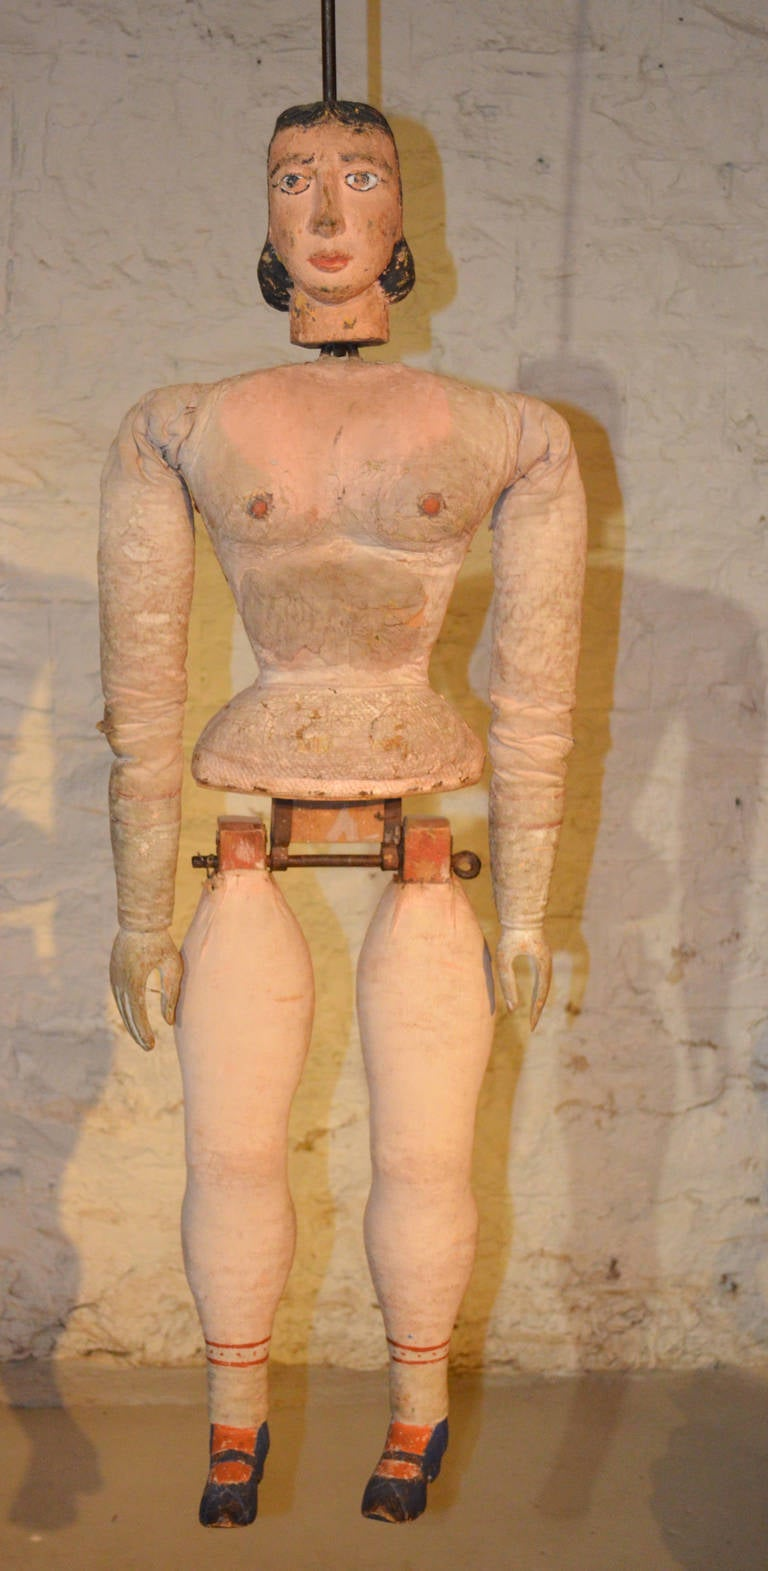 Italian Articulated Rod Puppet Sculpture For Sale 2